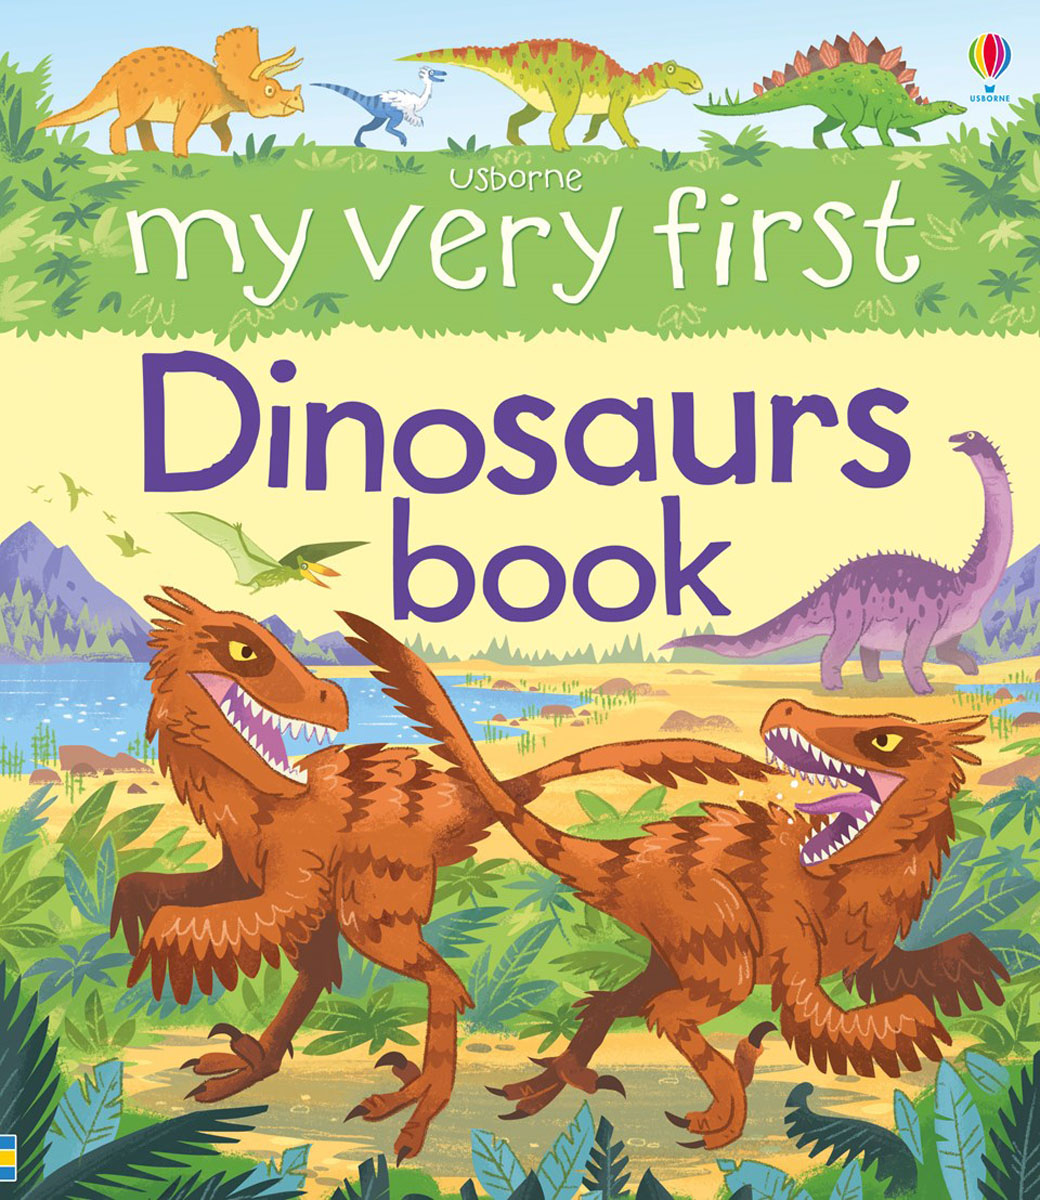 My very first dinosaurs book ultimate sticker book dangerous dinosaurs